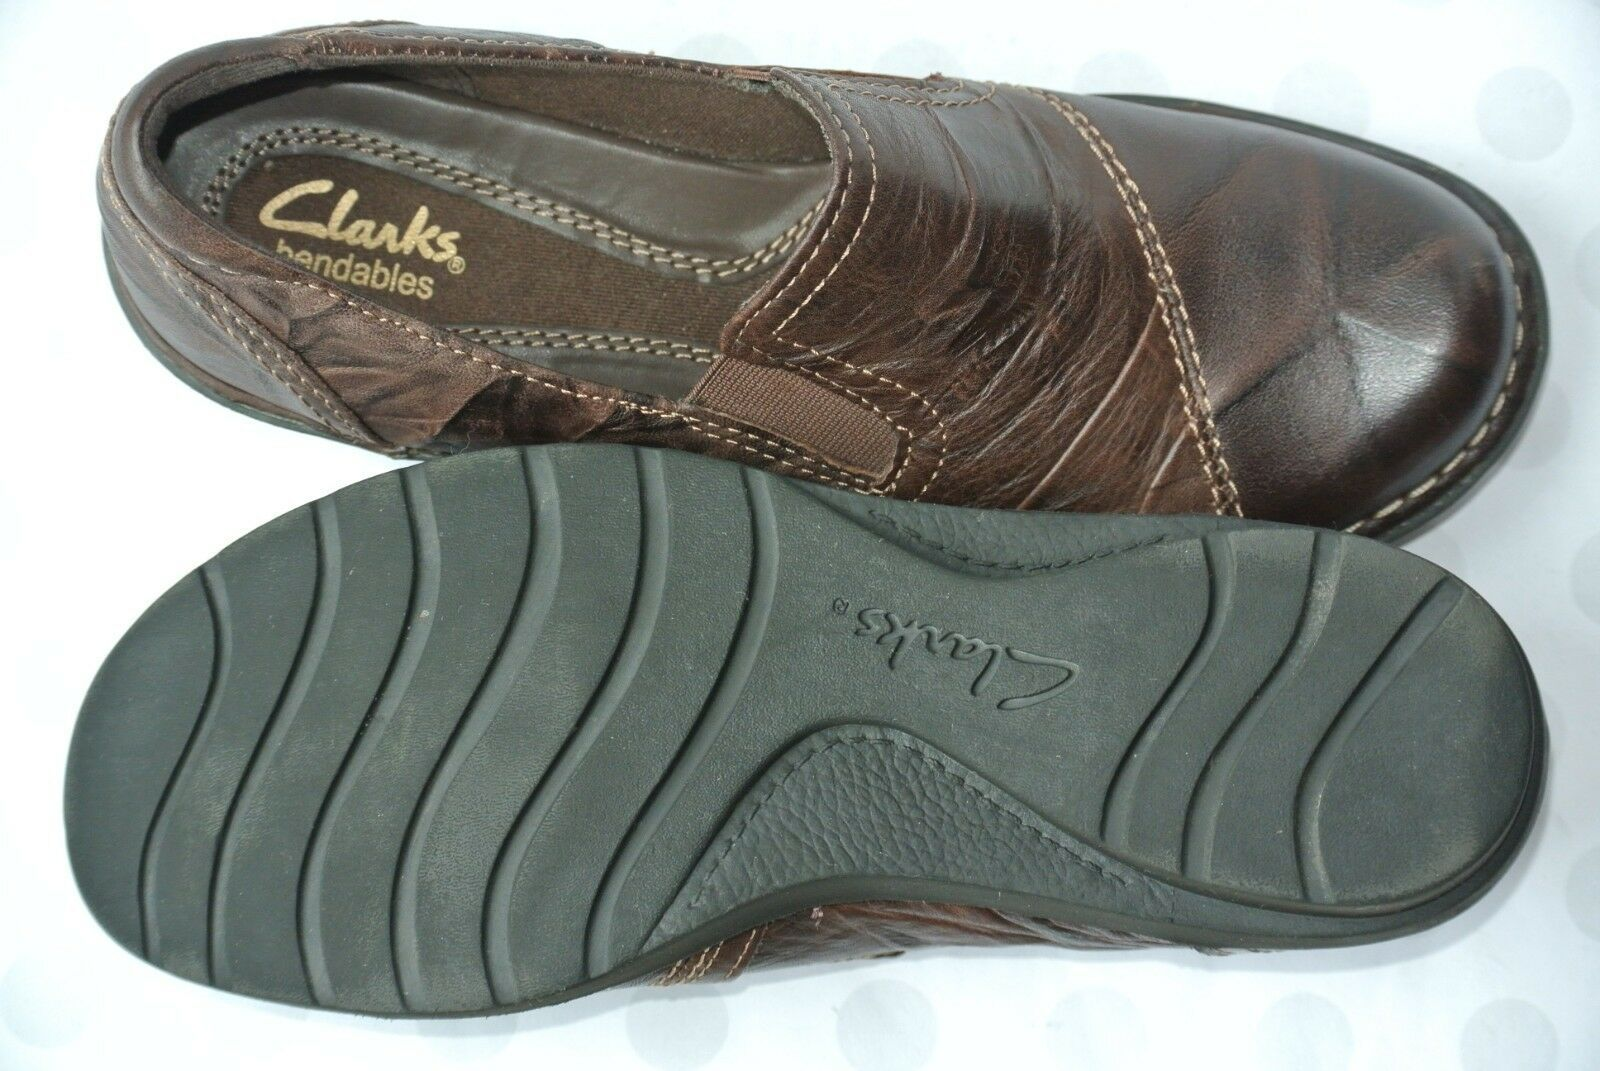 Clarks Bendables Womens Sz 7 M Brown Leather Comfort Slip On Flats NICE!!